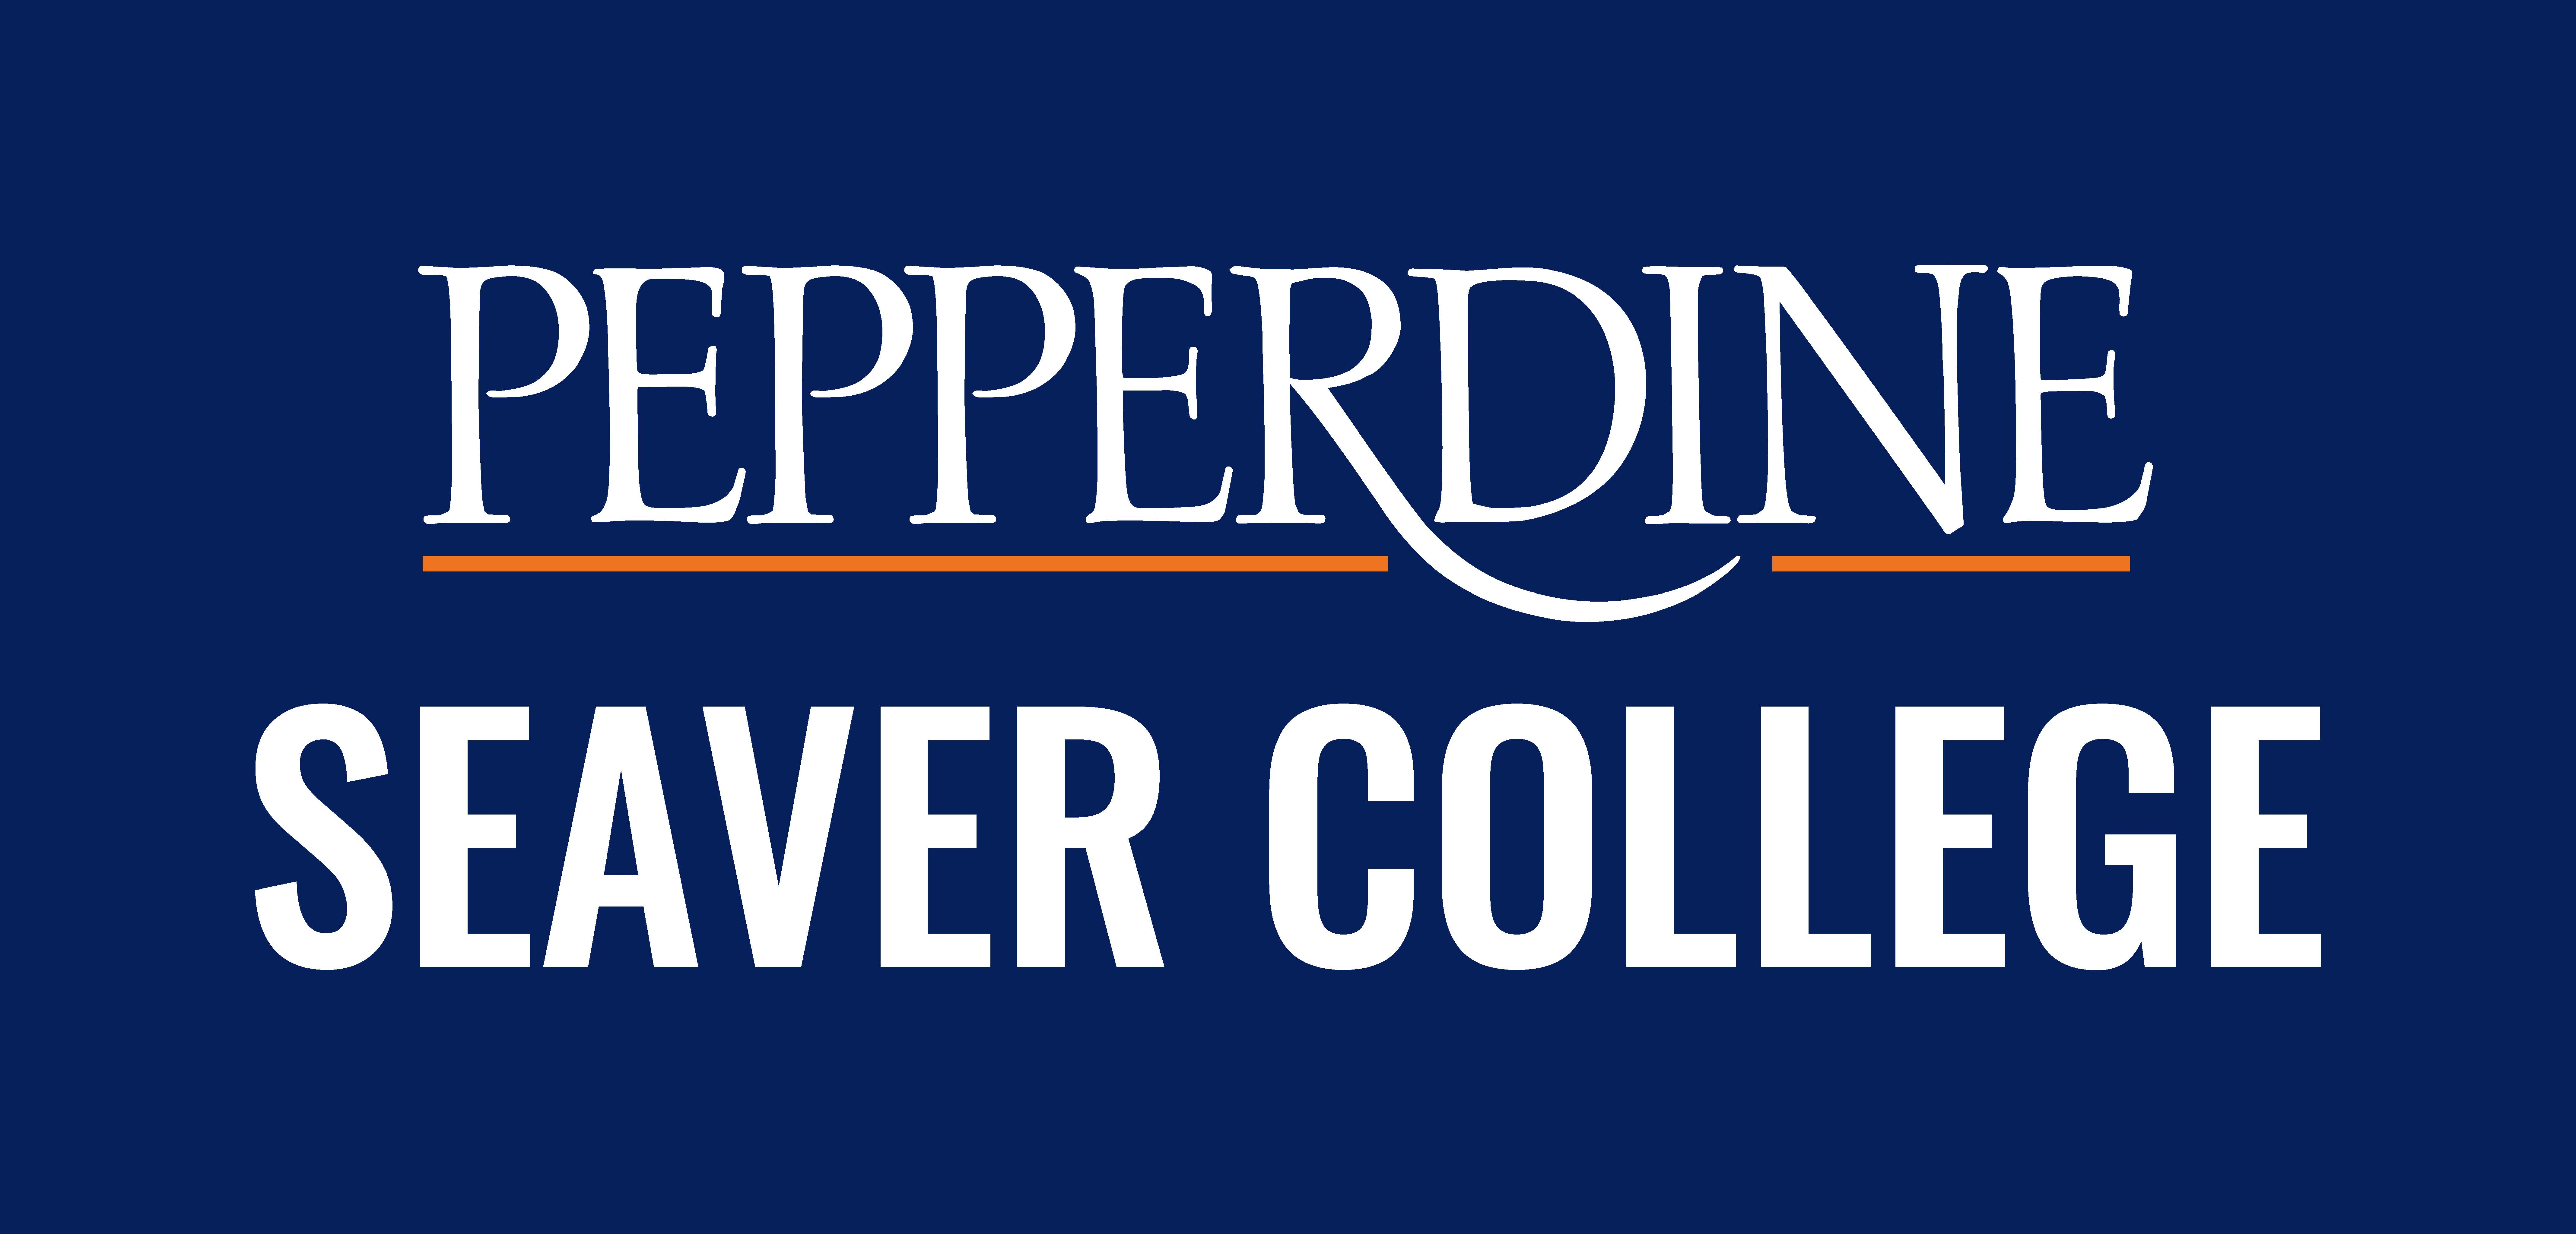 Pepperdine Seaver College logo